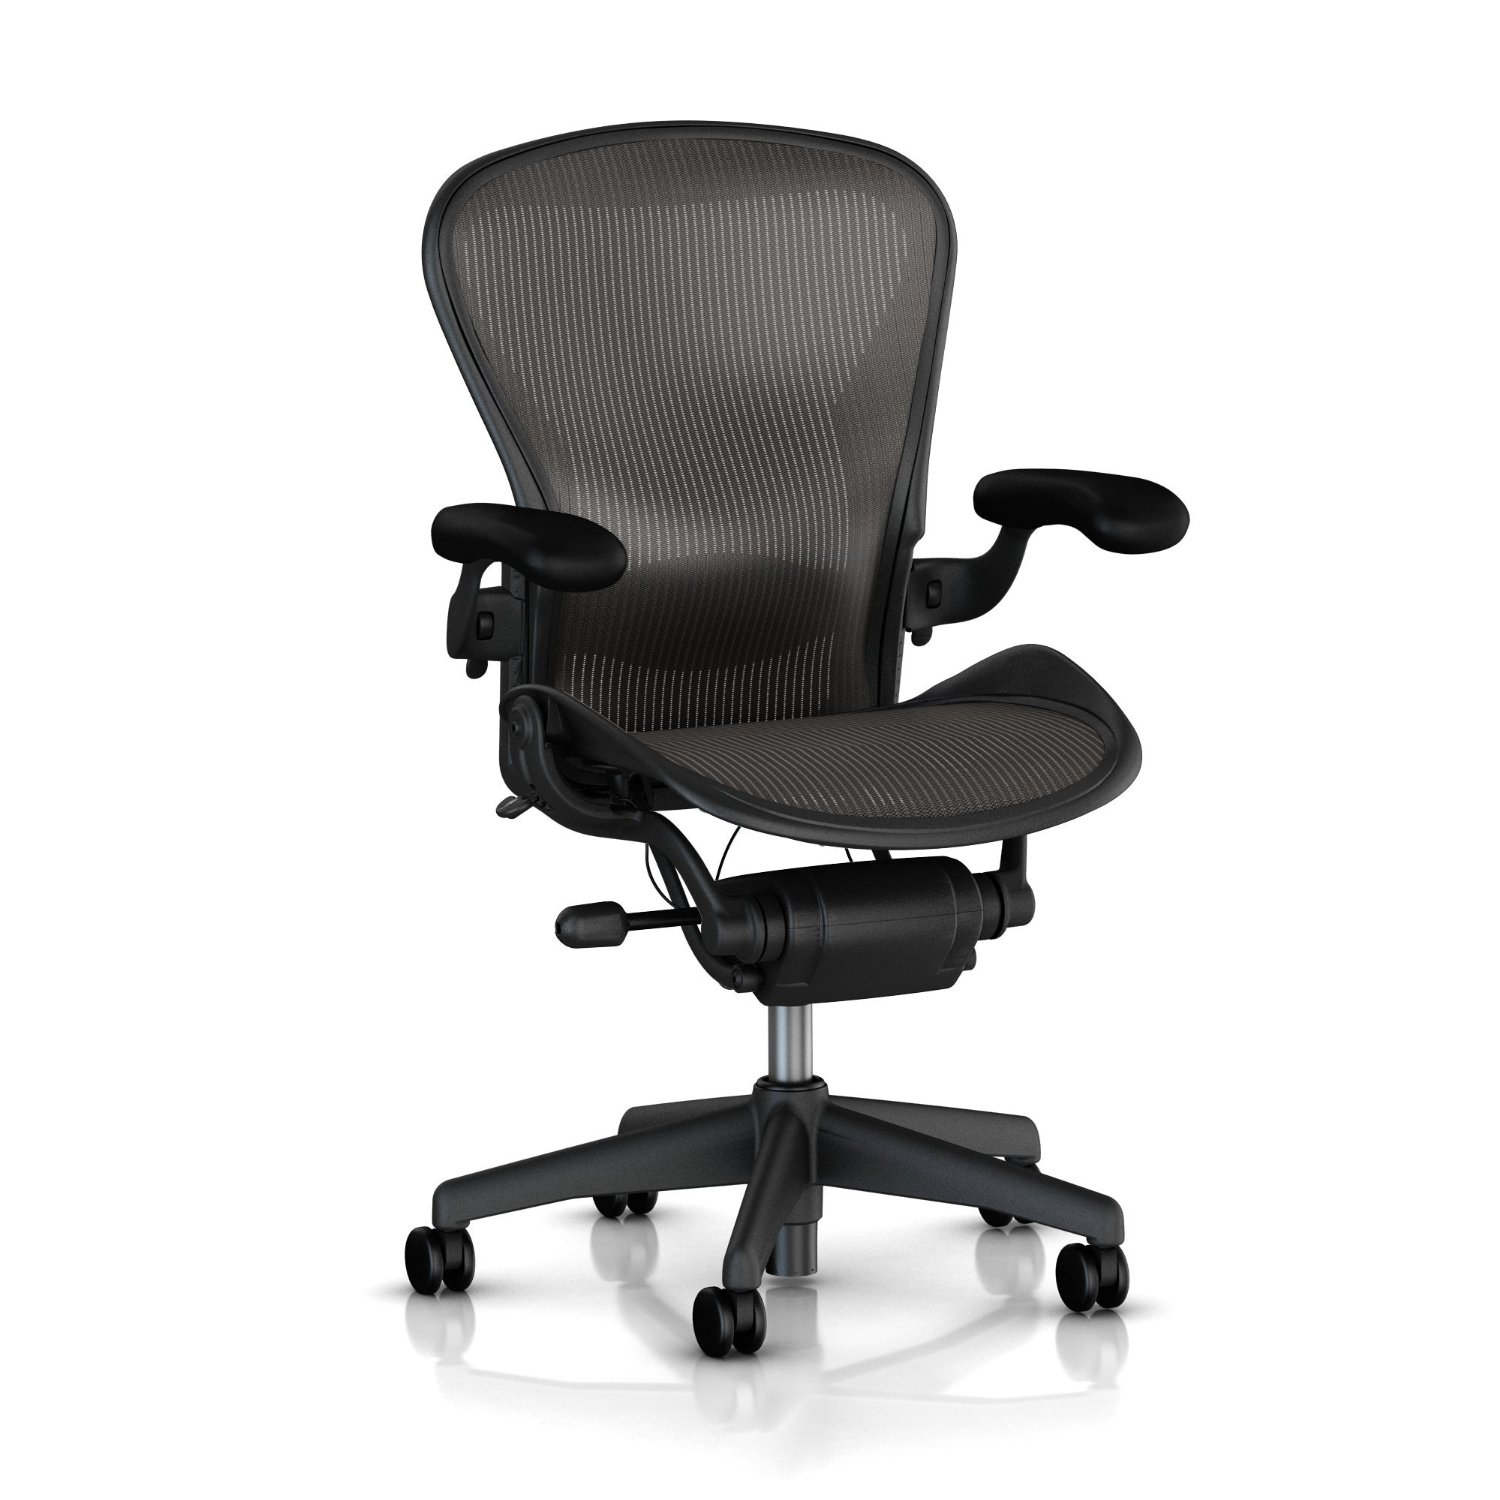 home chairs back problems discontinued dining room lower pain relief products and tools herman miller aeron